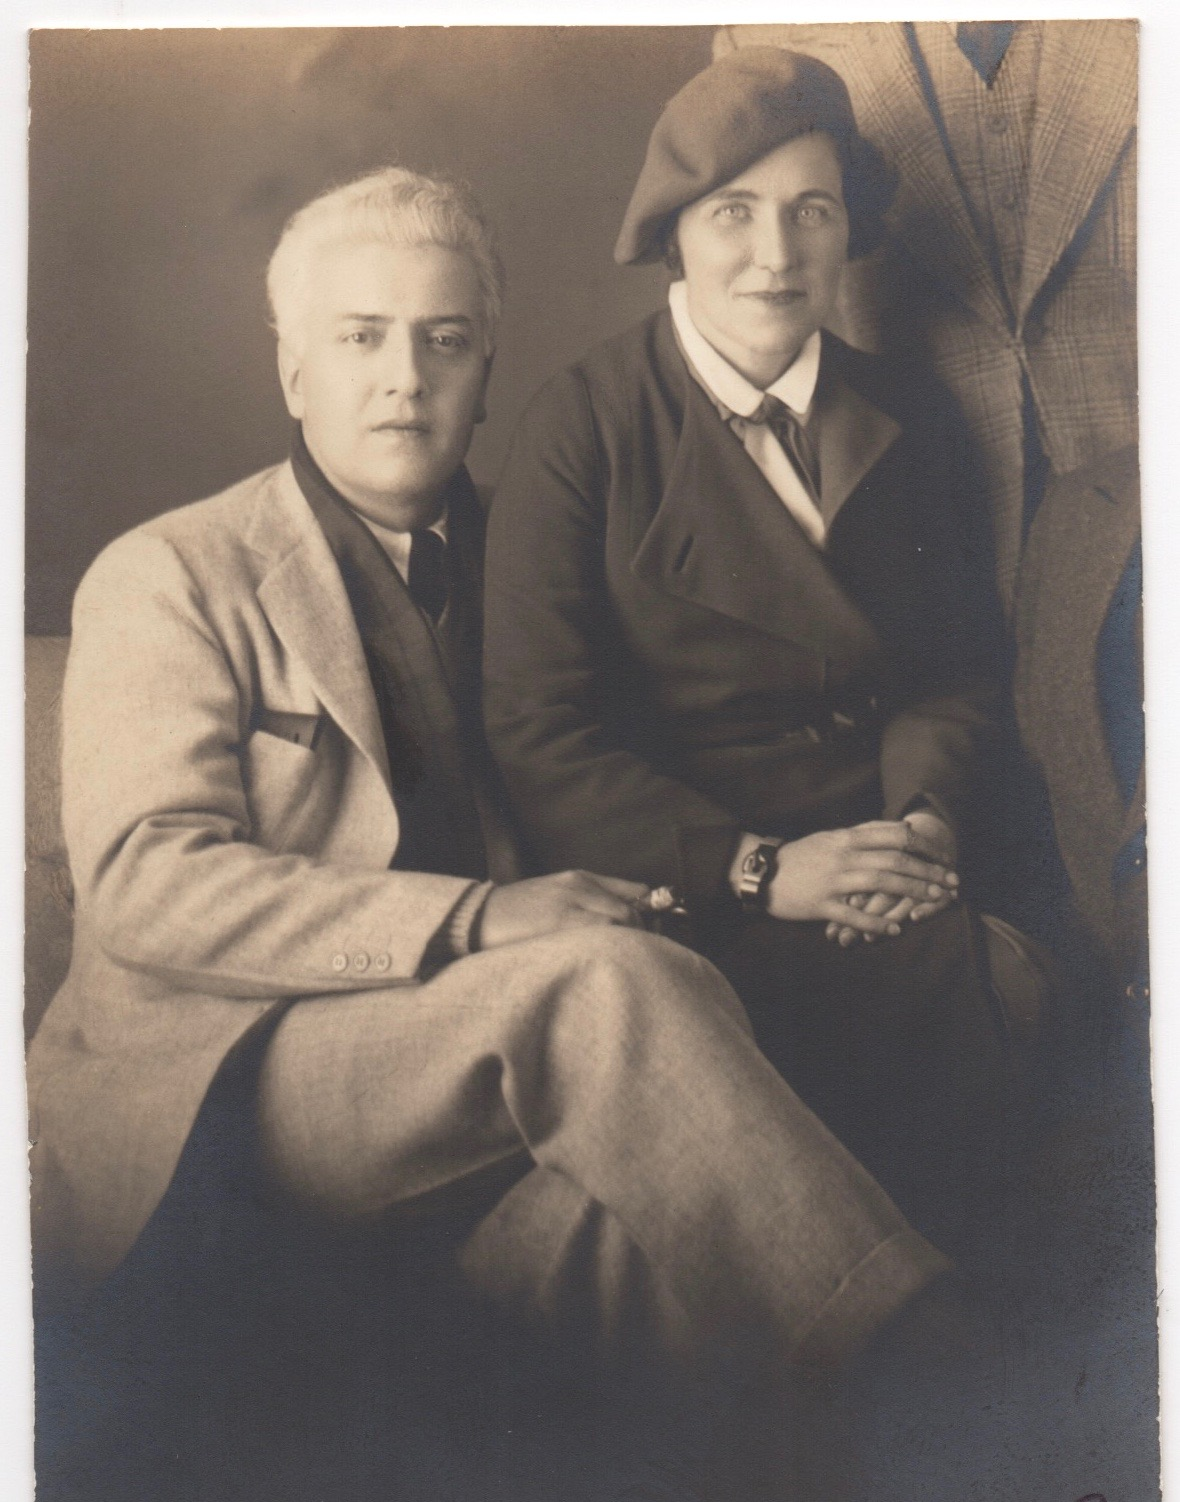 An undated photo of Starrett and Ray. There are so many questions. When was it taken? When they were married? Who those other men standing behind Ray's left shoulder and seated next to her? Here's one more question: Was the photo flopped? Look at the pocket in Vincent's suitcoat. The pocket's on the right side, but it's more commonly found on the left.